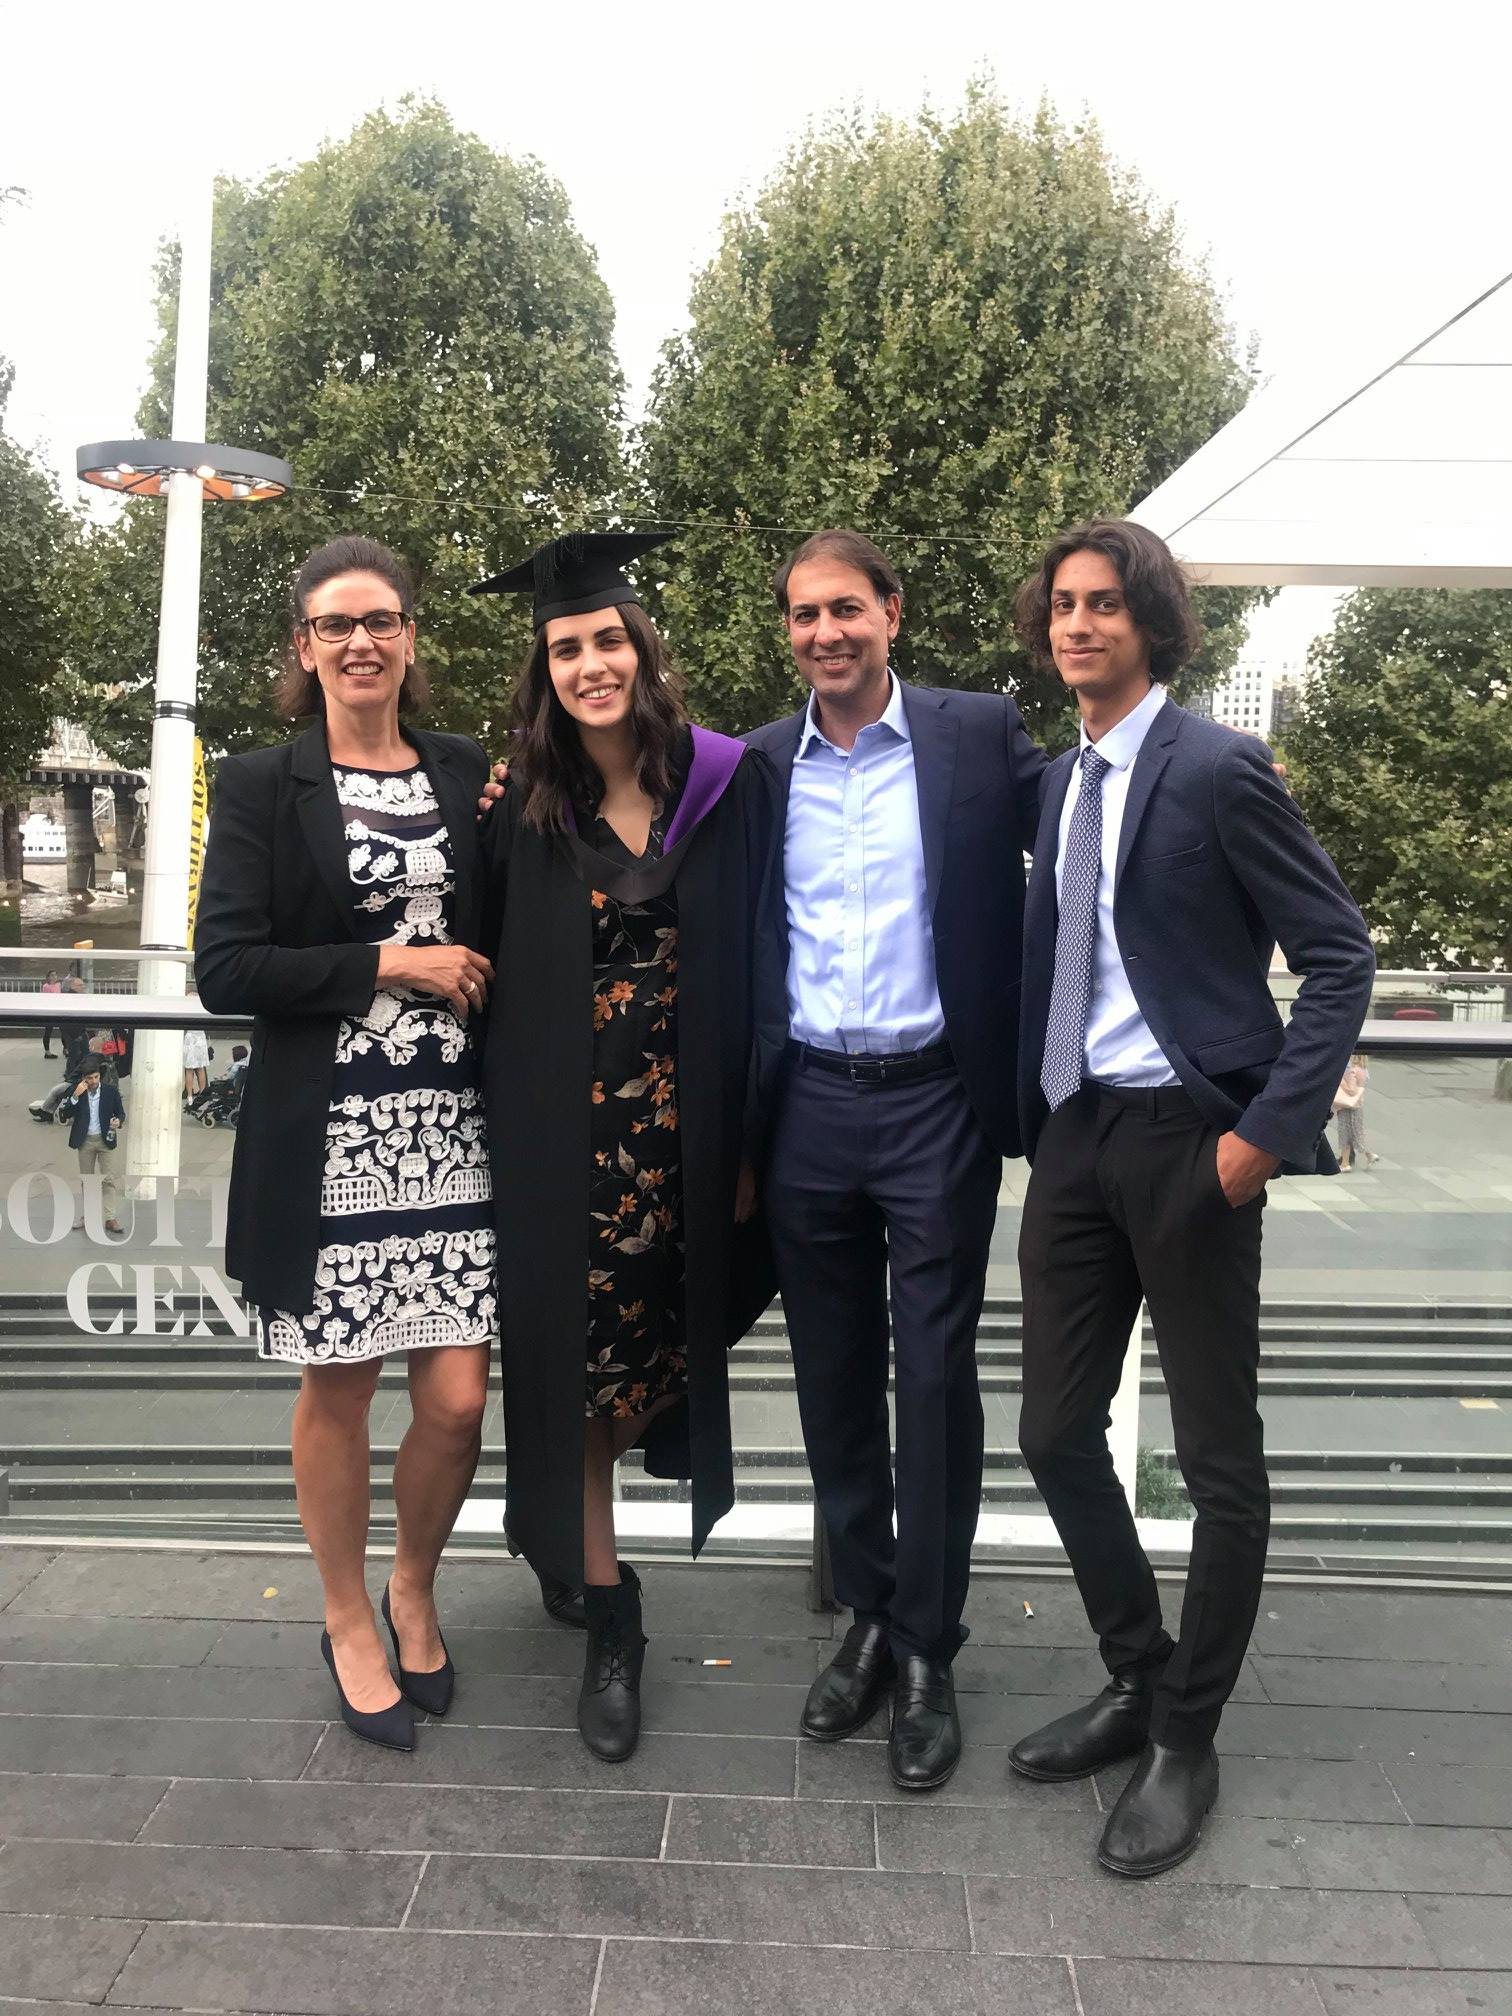 Serena and her parents and younger brother - a family of mixed south Asian and European heritage pose for a happy picture in formal attire. Serena is wearing a cap and gown for her university graduation ceremony.